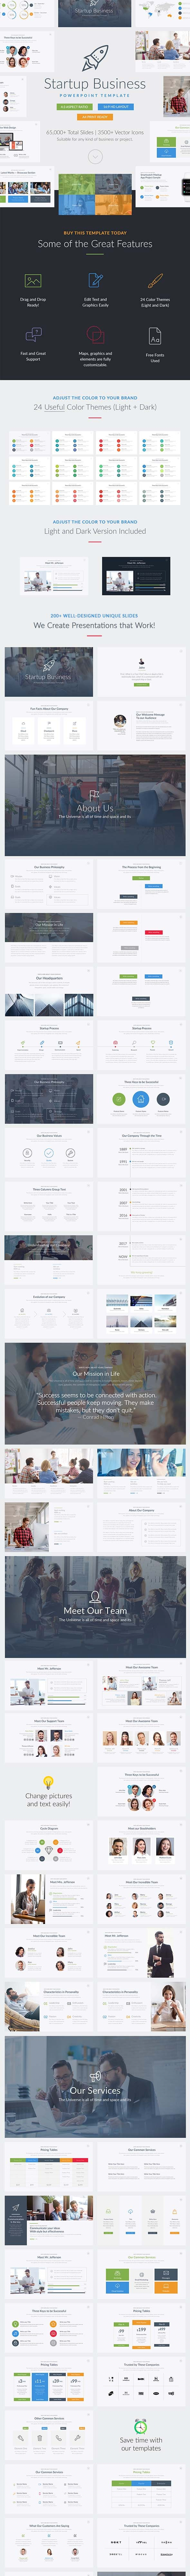 Startup Business PowerPoint Template Pitch Deck - PowerPoint Templates Presentation Templates